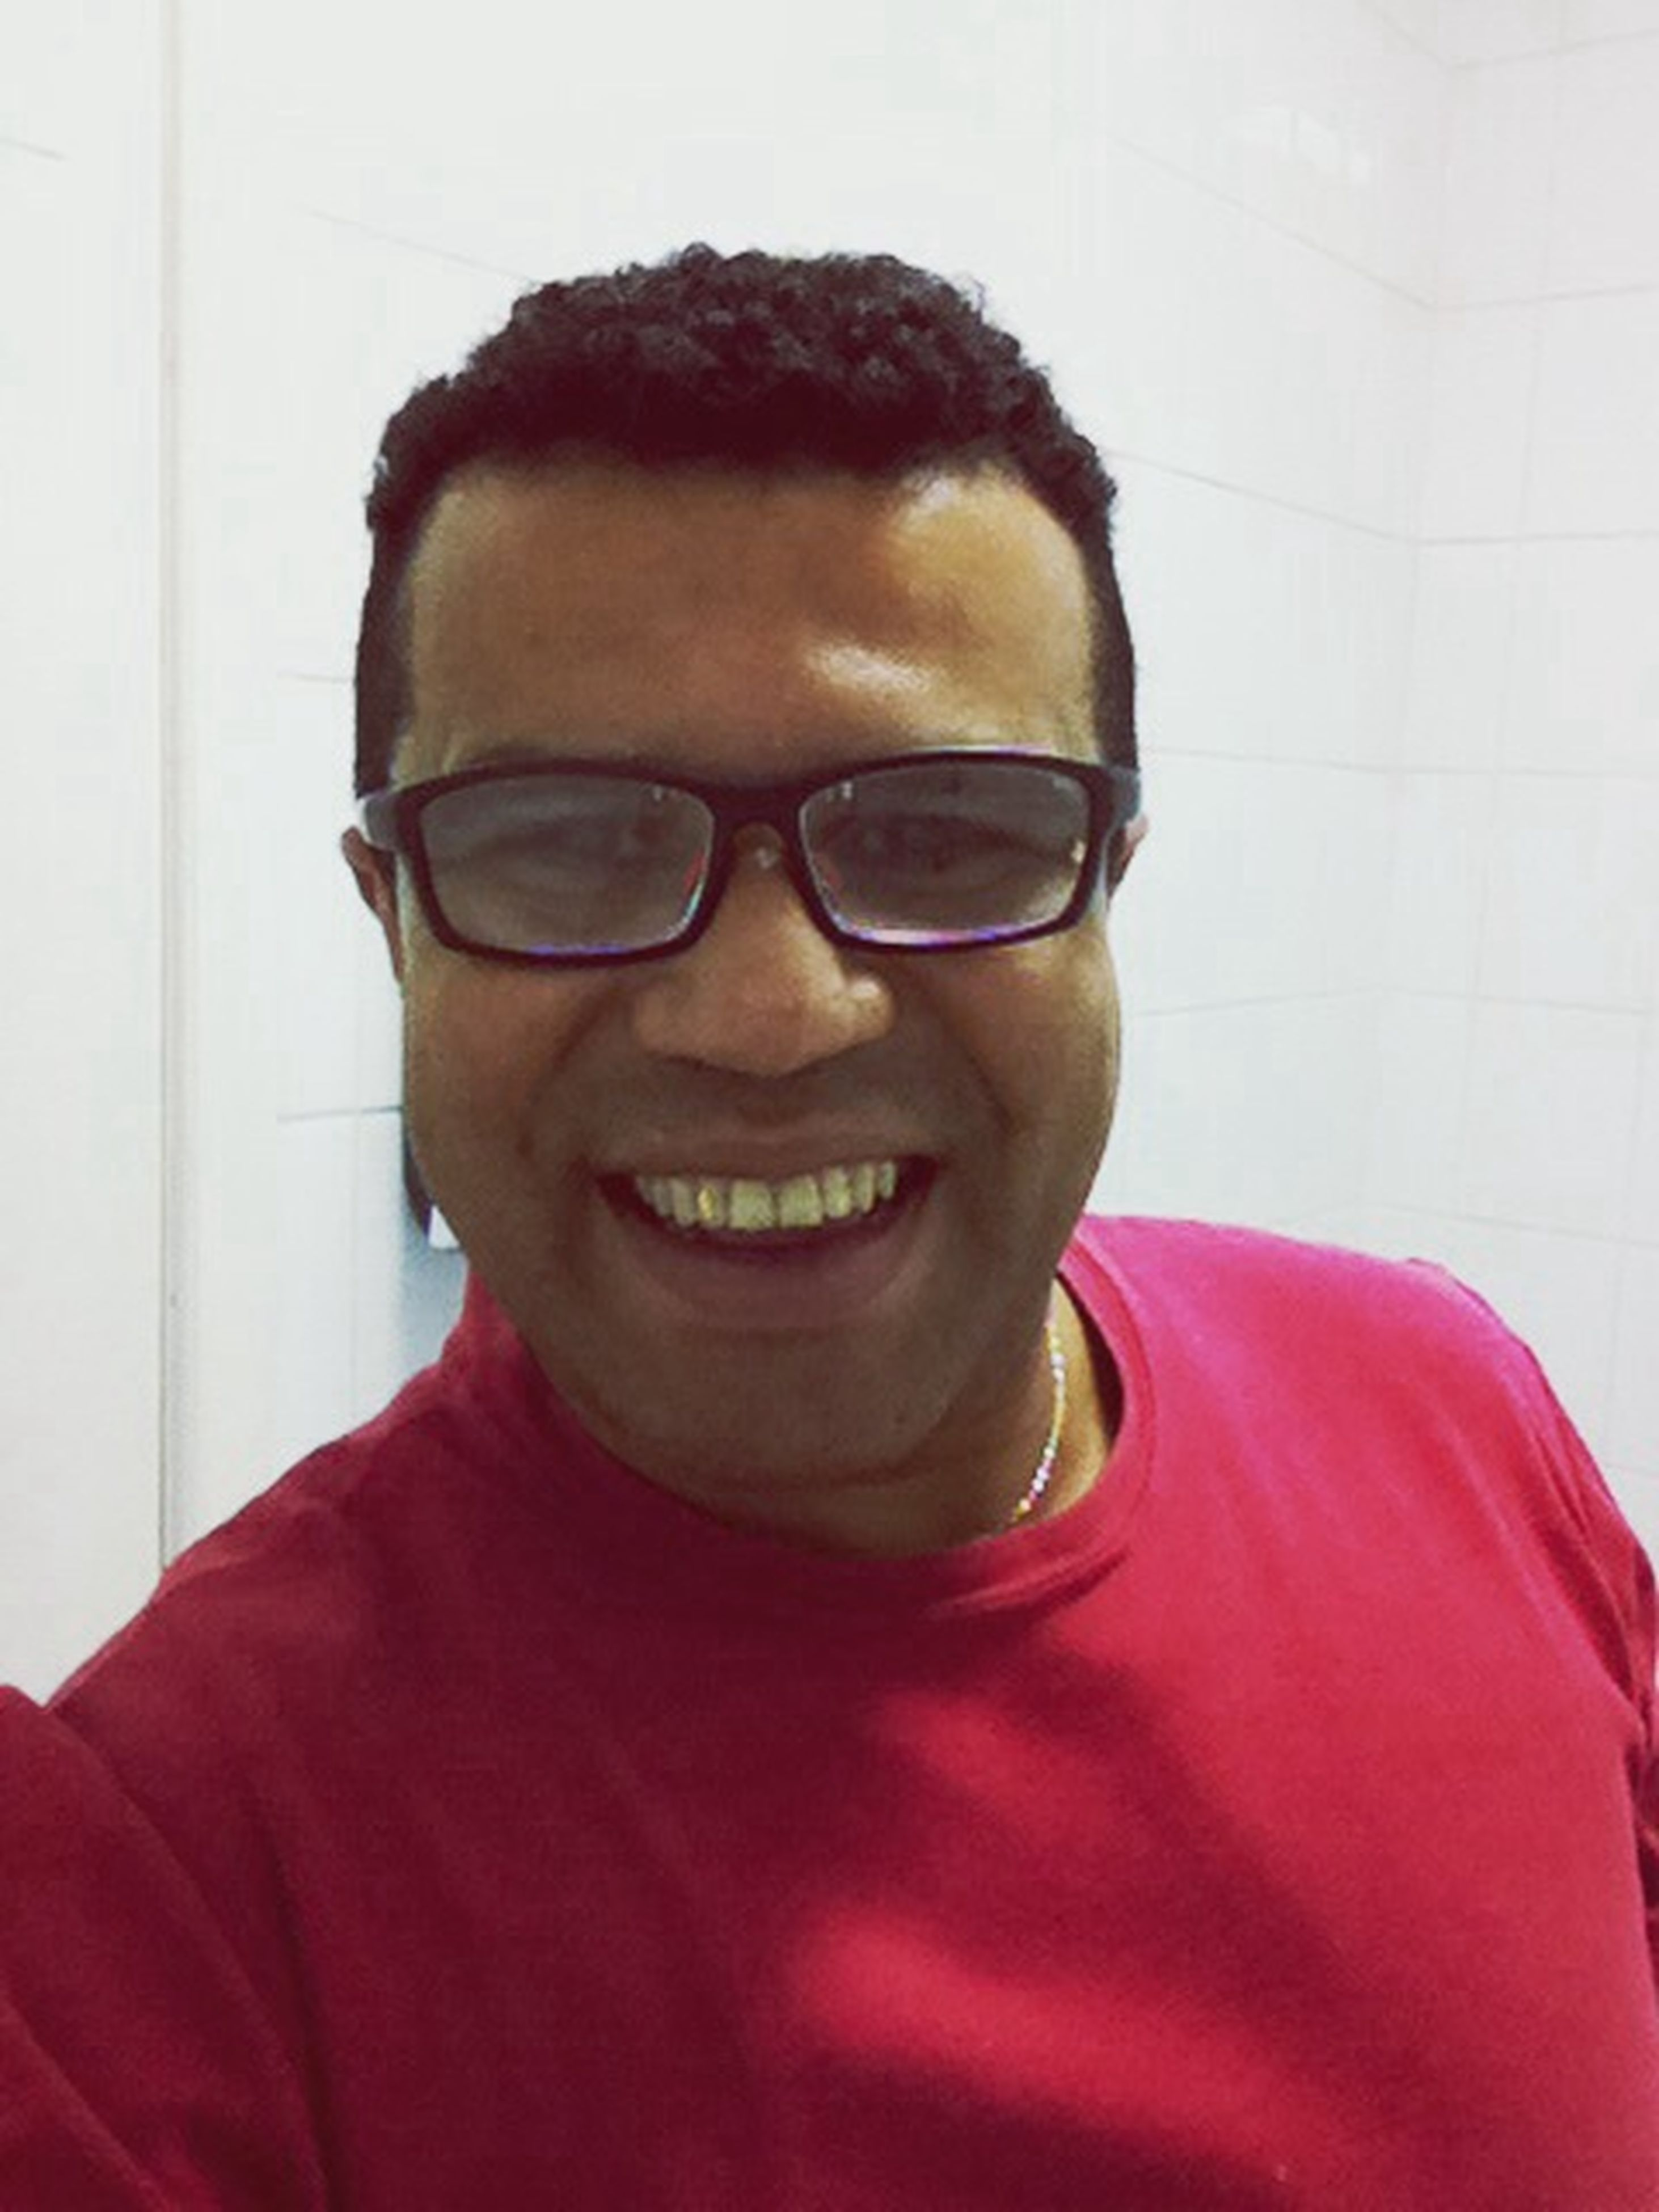 looking at camera, portrait, front view, person, lifestyles, casual clothing, headshot, young adult, smiling, leisure activity, indoors, young men, close-up, sunglasses, handsome, happiness, head and shoulders